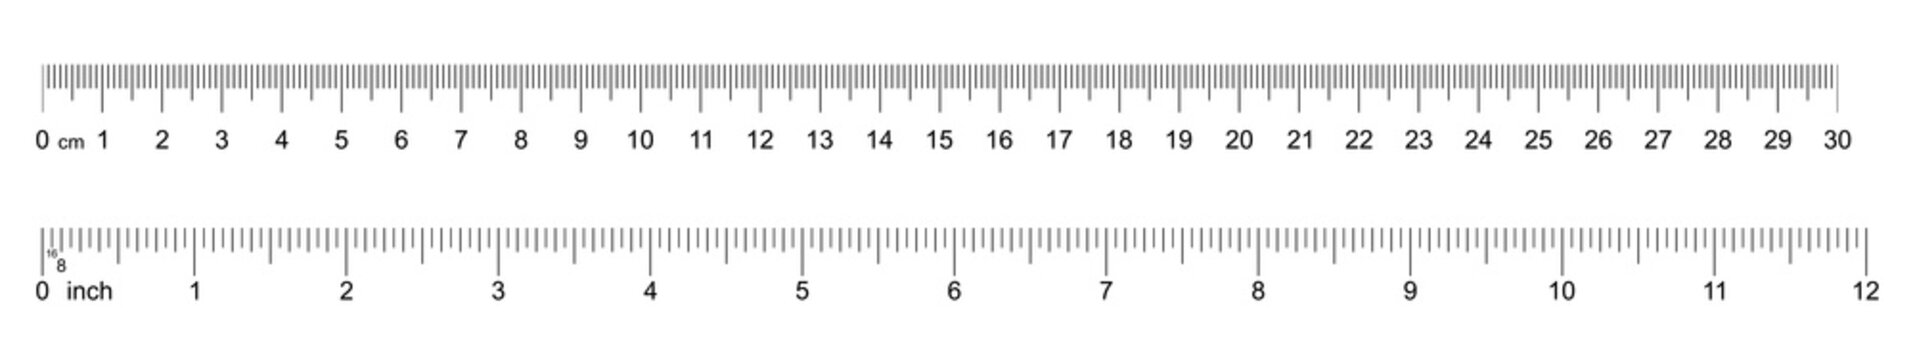 Ruler 30 cm, 12 inch. Set of ruler 30 cm 12 inch. Measuring tool. Ruler scale. Grid cm, inch. Size indicator units. Metric Centimeter, inch size indicators. Vector